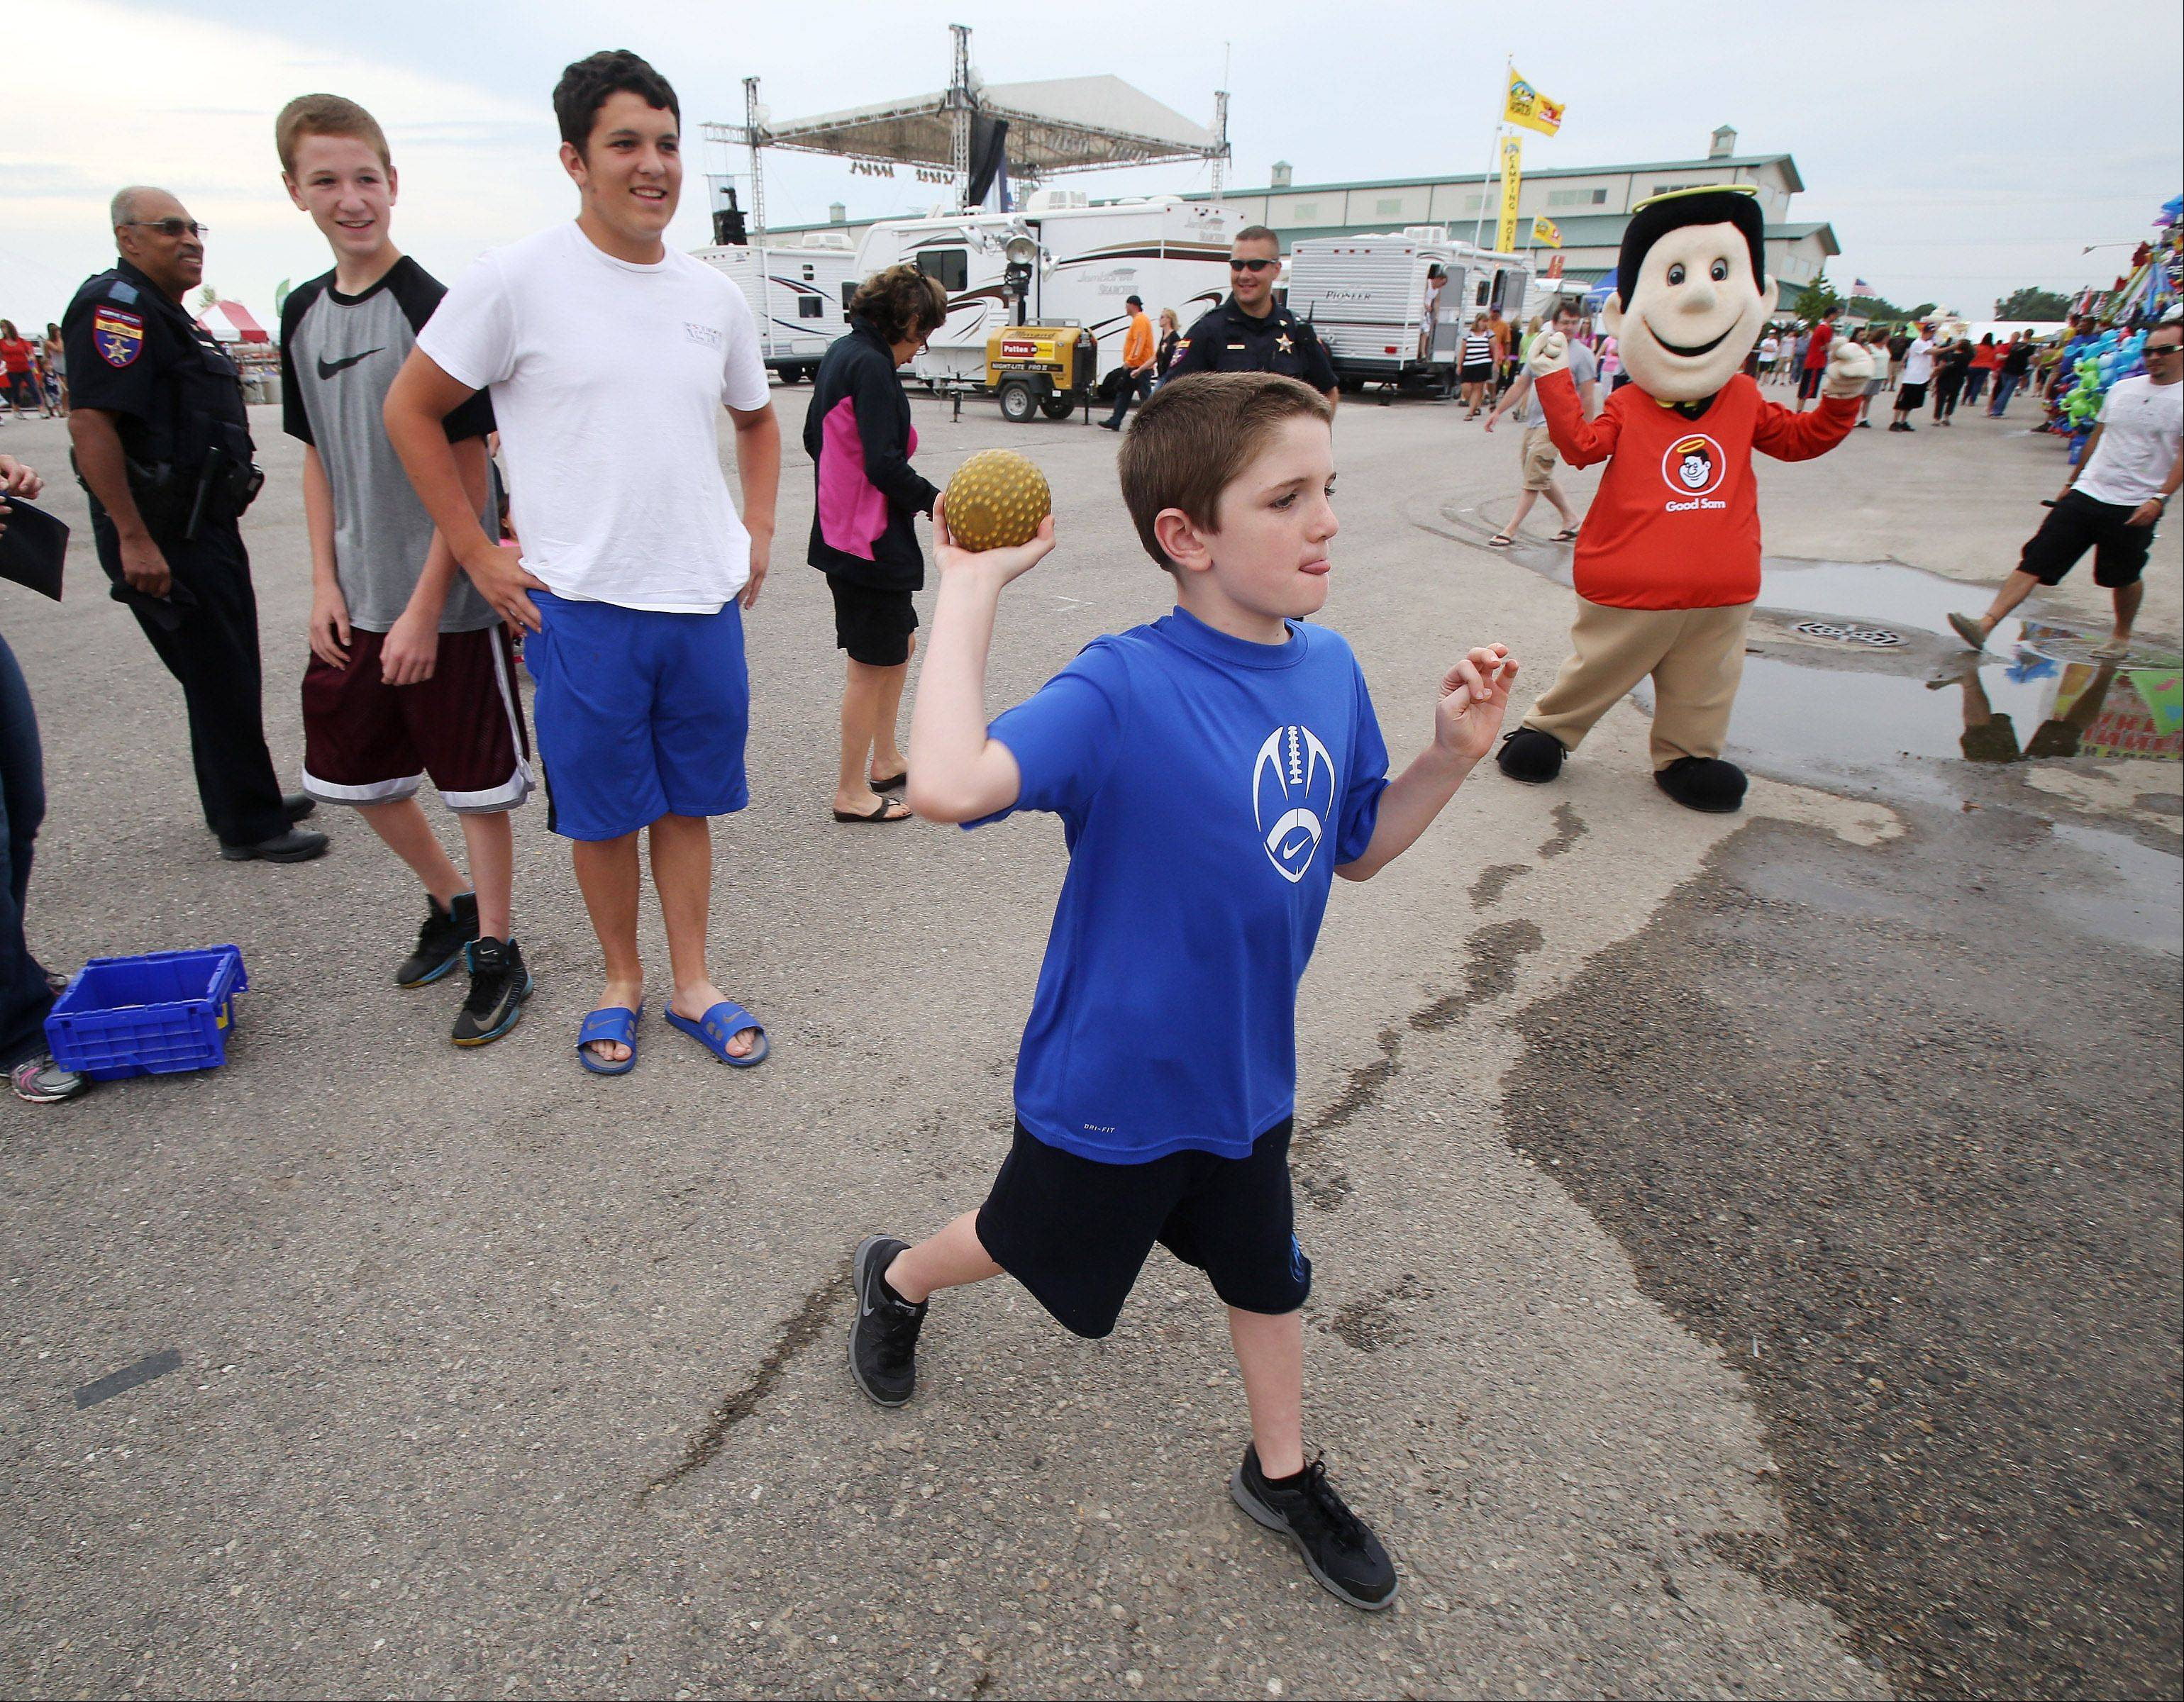 Peter Curran, 9, of Libertyville throws the ball to try and dunk his dad, Lake County Sheriff Mark Curran, in the dunk tank sponsored by the Lake County Sheriff's Department Thursday at the Lake County Fairgrounds in Grayslake. The money raised will be donated to Special Olympics Illinois. His brothers Mark, 15, and George, 14 stand in the background waiting their turns to throw.